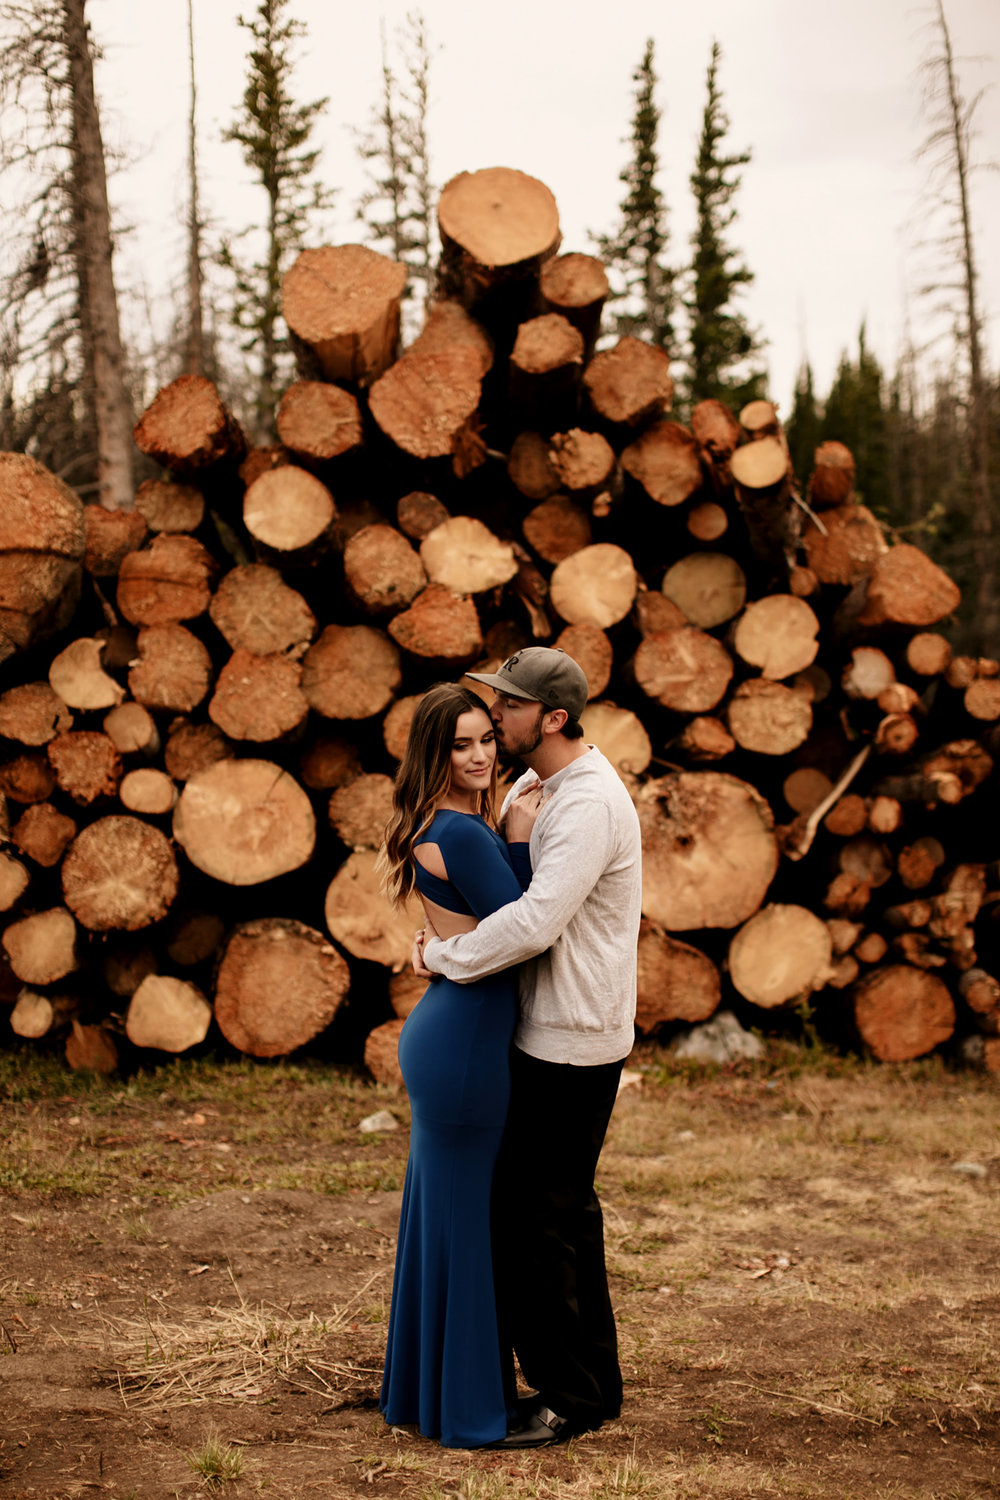 Liz Osban Photography Cheyenne Wyoming Engagement Wedding Photographer couple adventure elopement wedding laramie denver fort collins colorado rocky mountain national park37.jpg